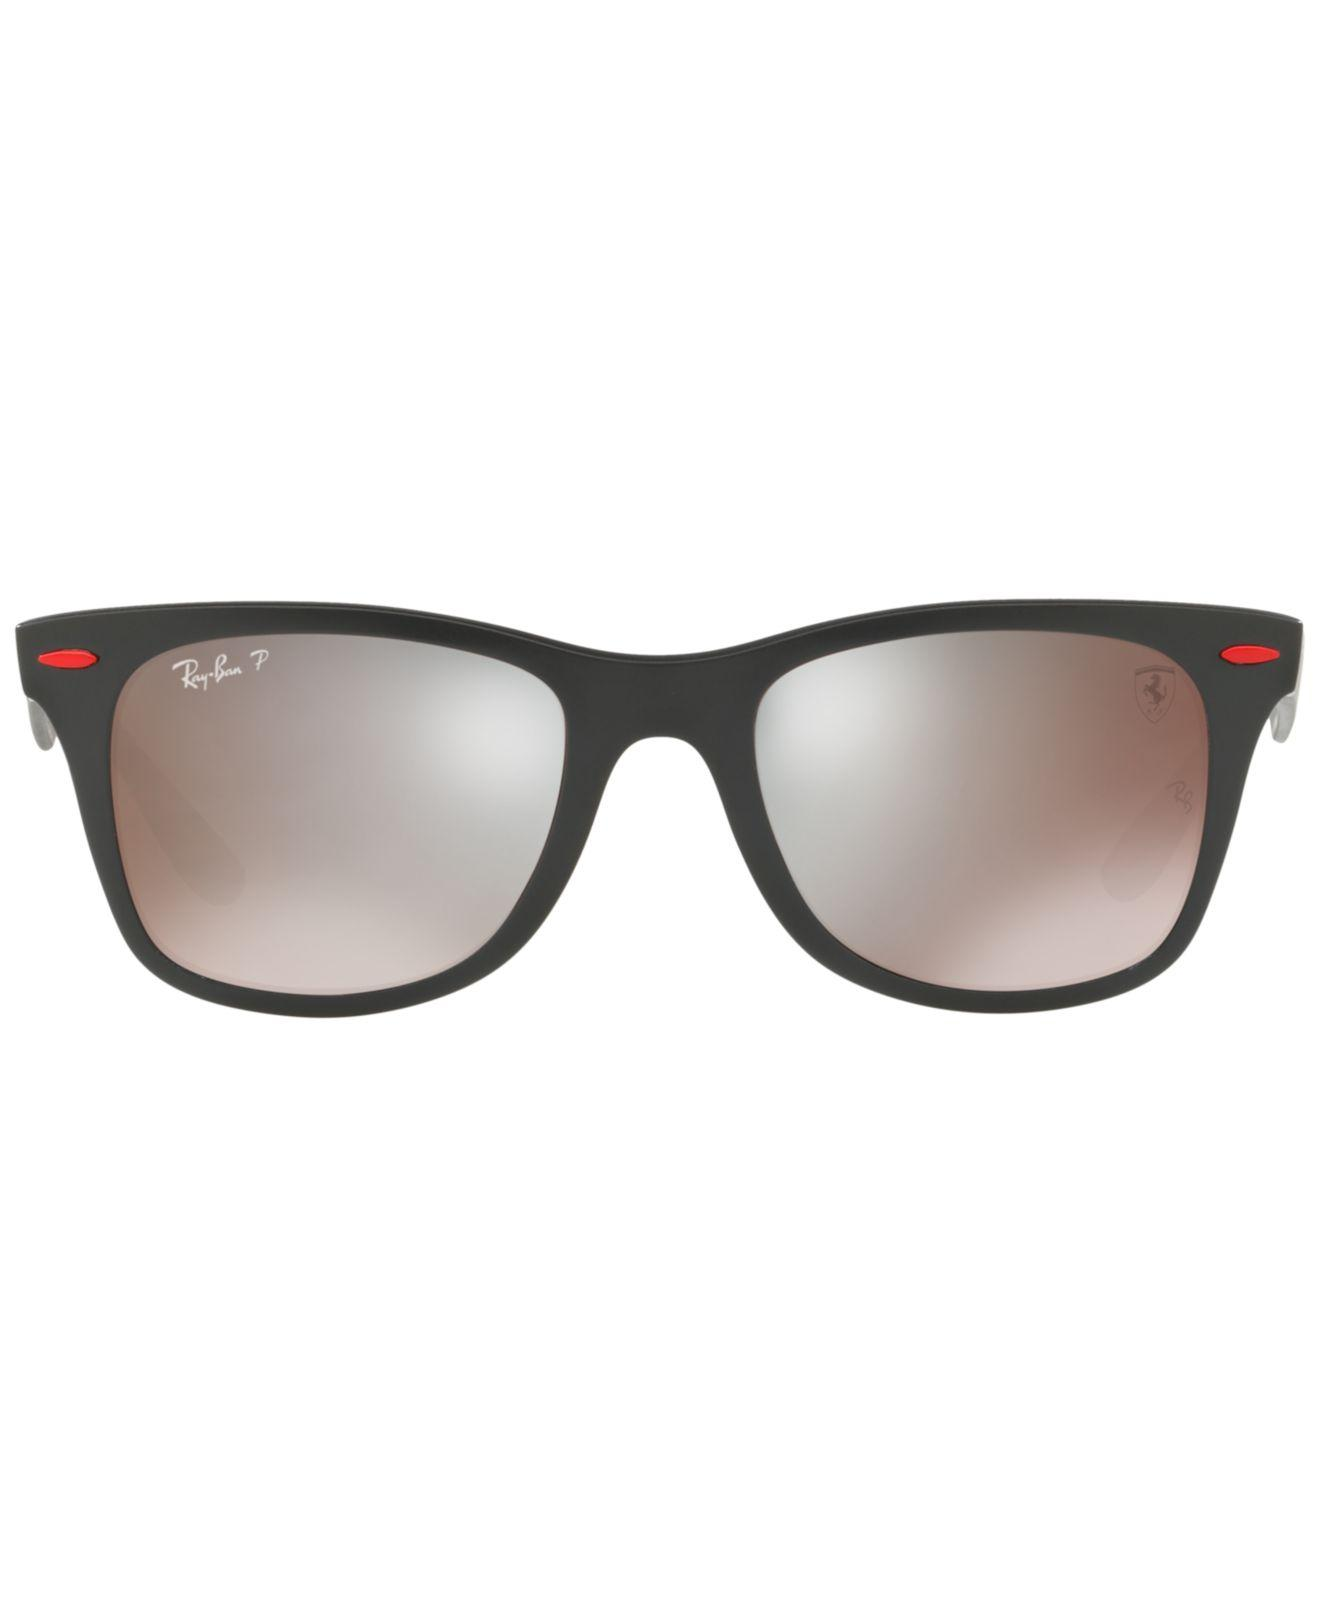 61faabad6d Ray-Ban. Women s Black Sunglasses ...